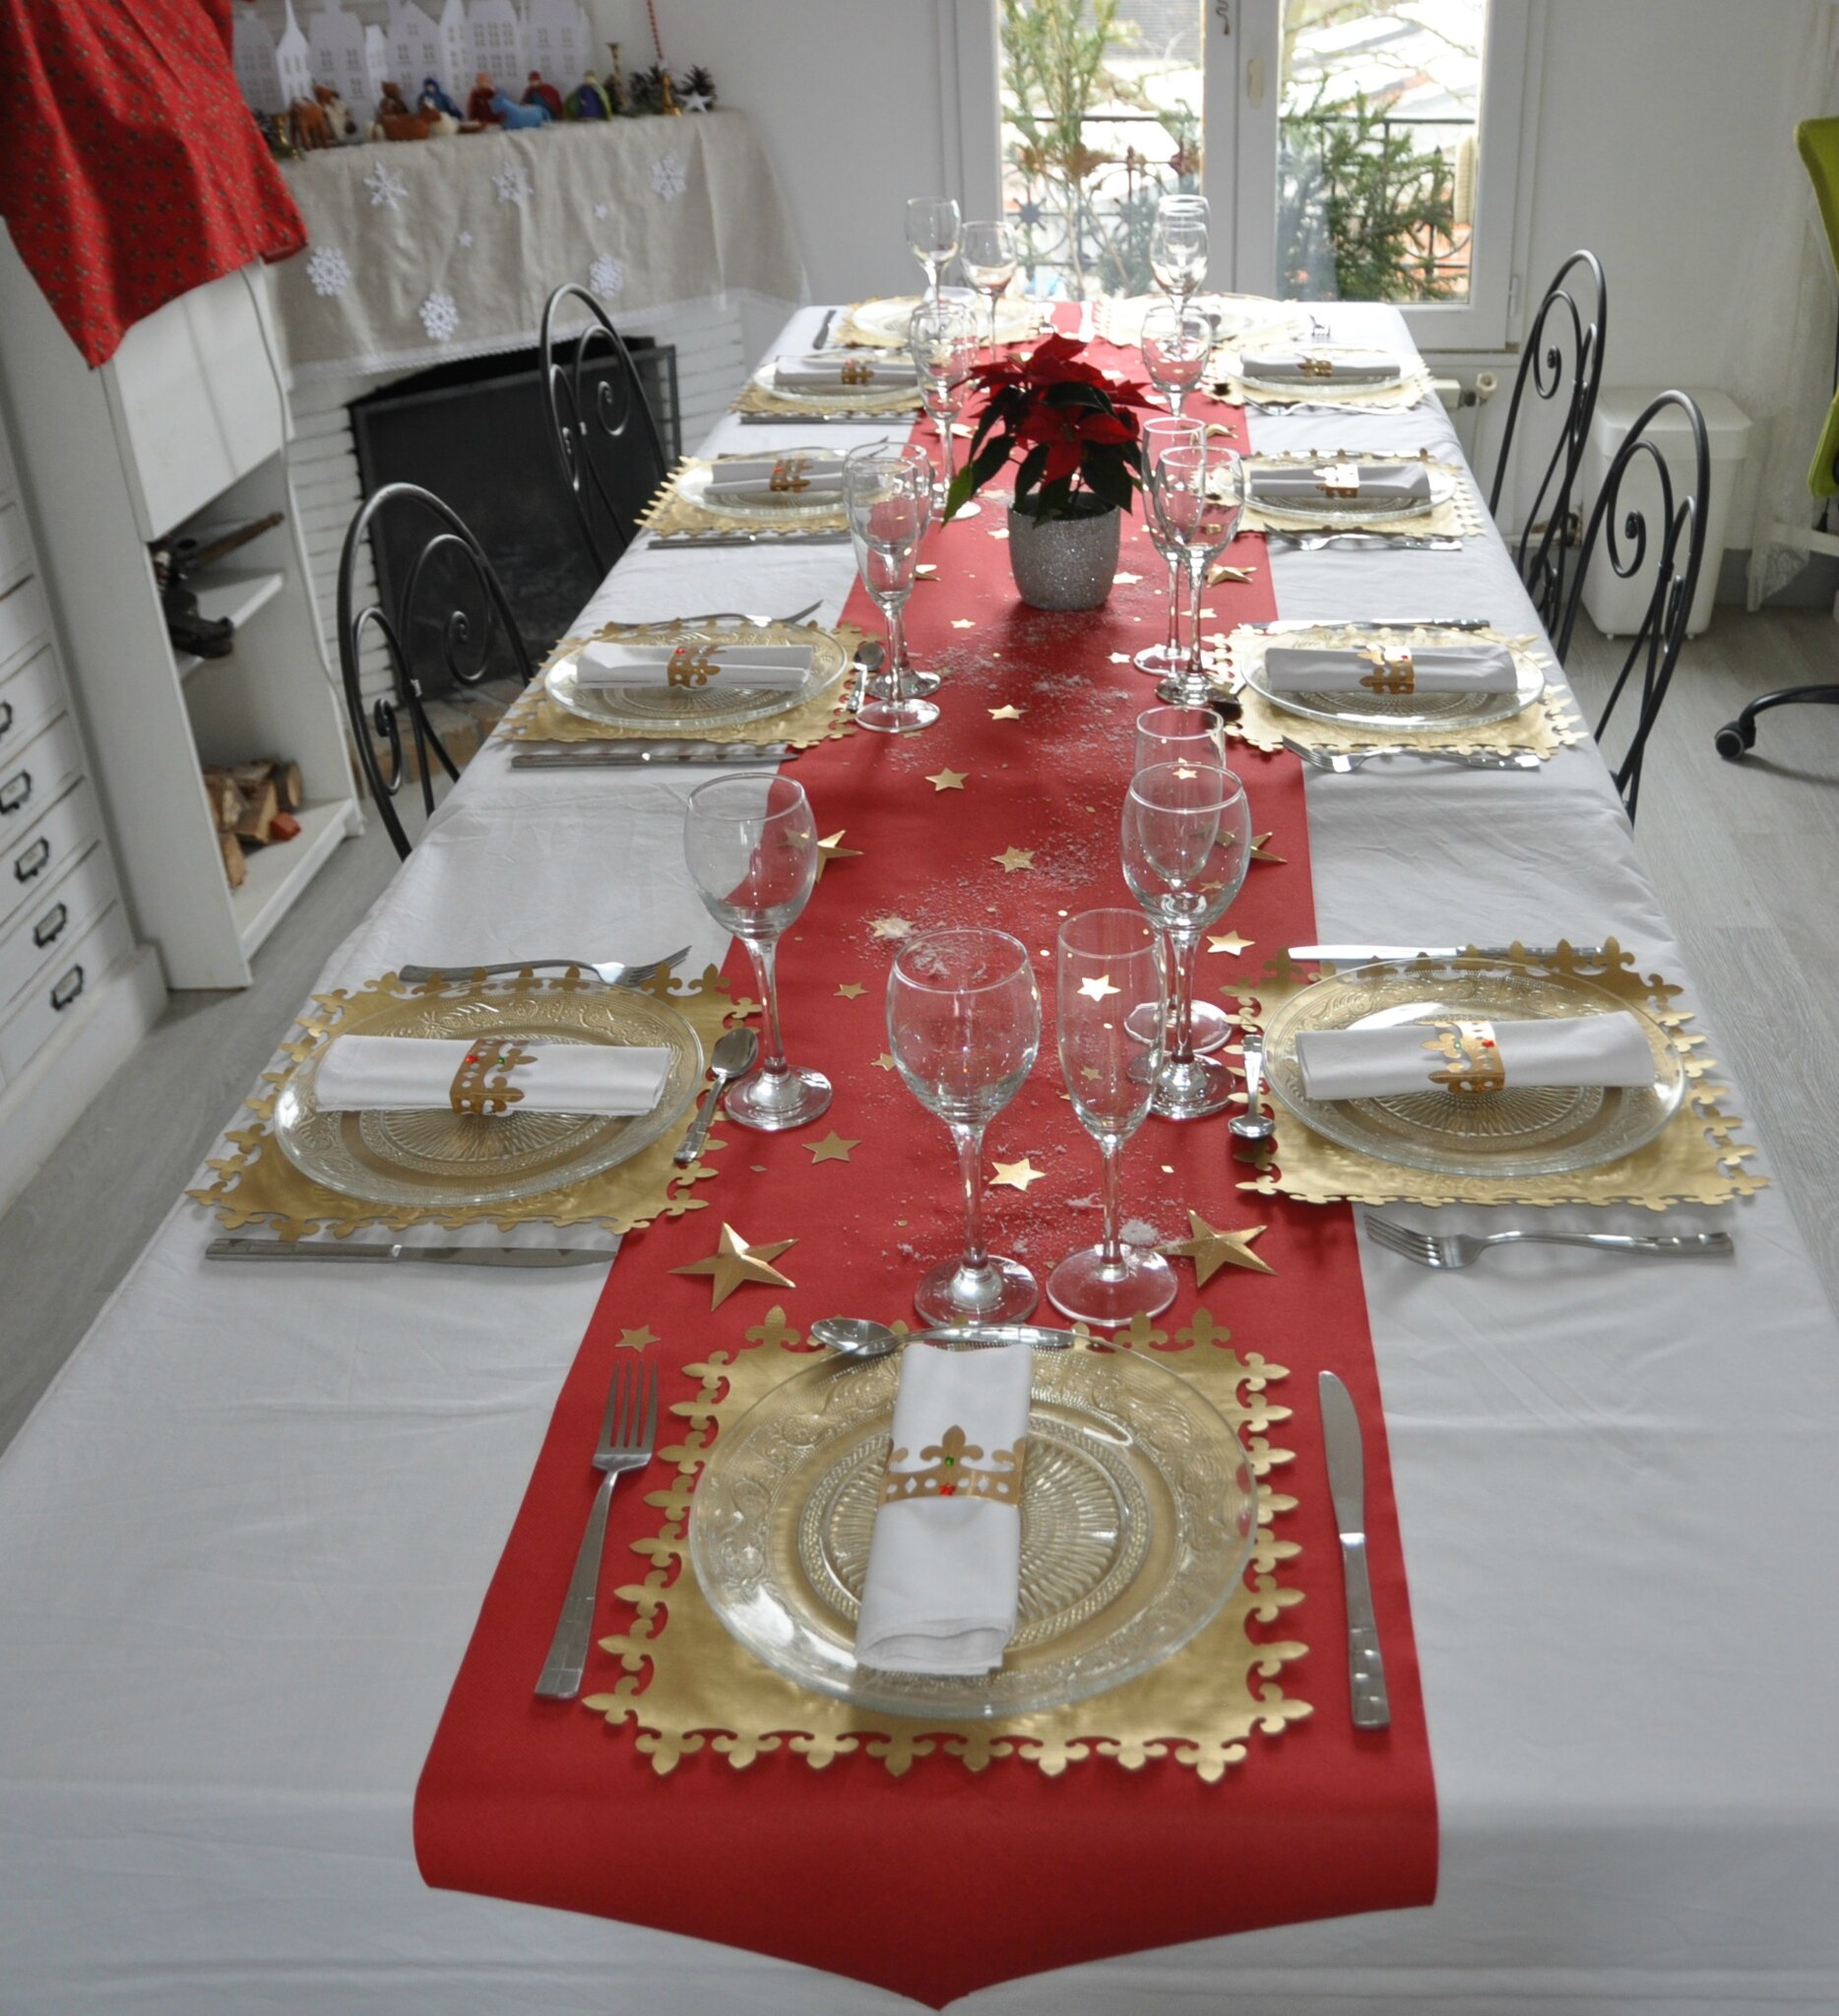 Ma d co de table epiphanie 2016 100 fait main id ecr ation for Decoration epiphanie